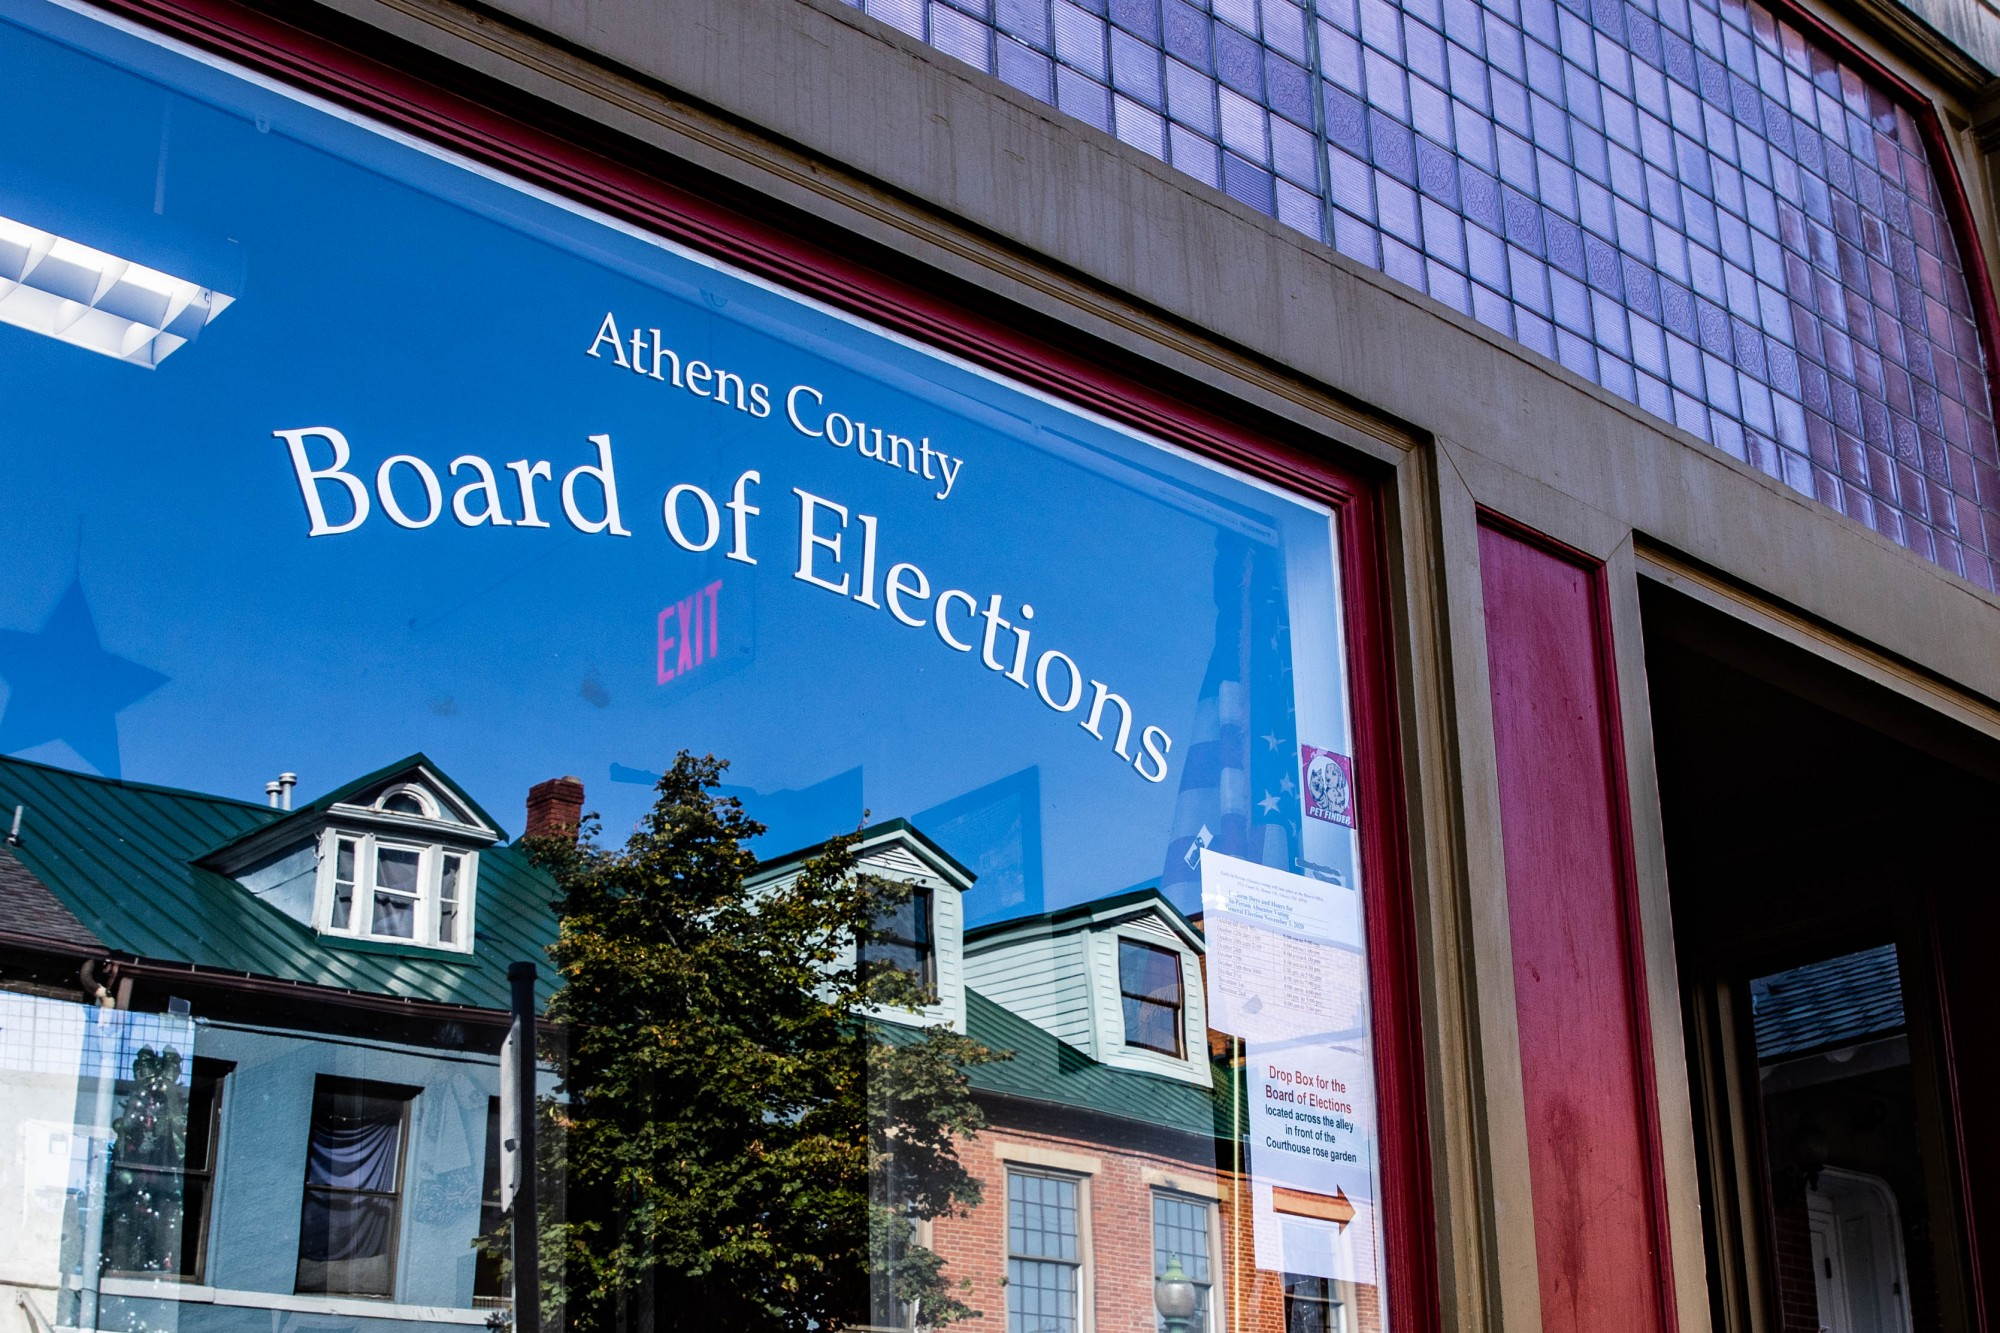 The Athens County Board of Elections, located at 15 S.Court St., in Athens, Ohio. (FILE)